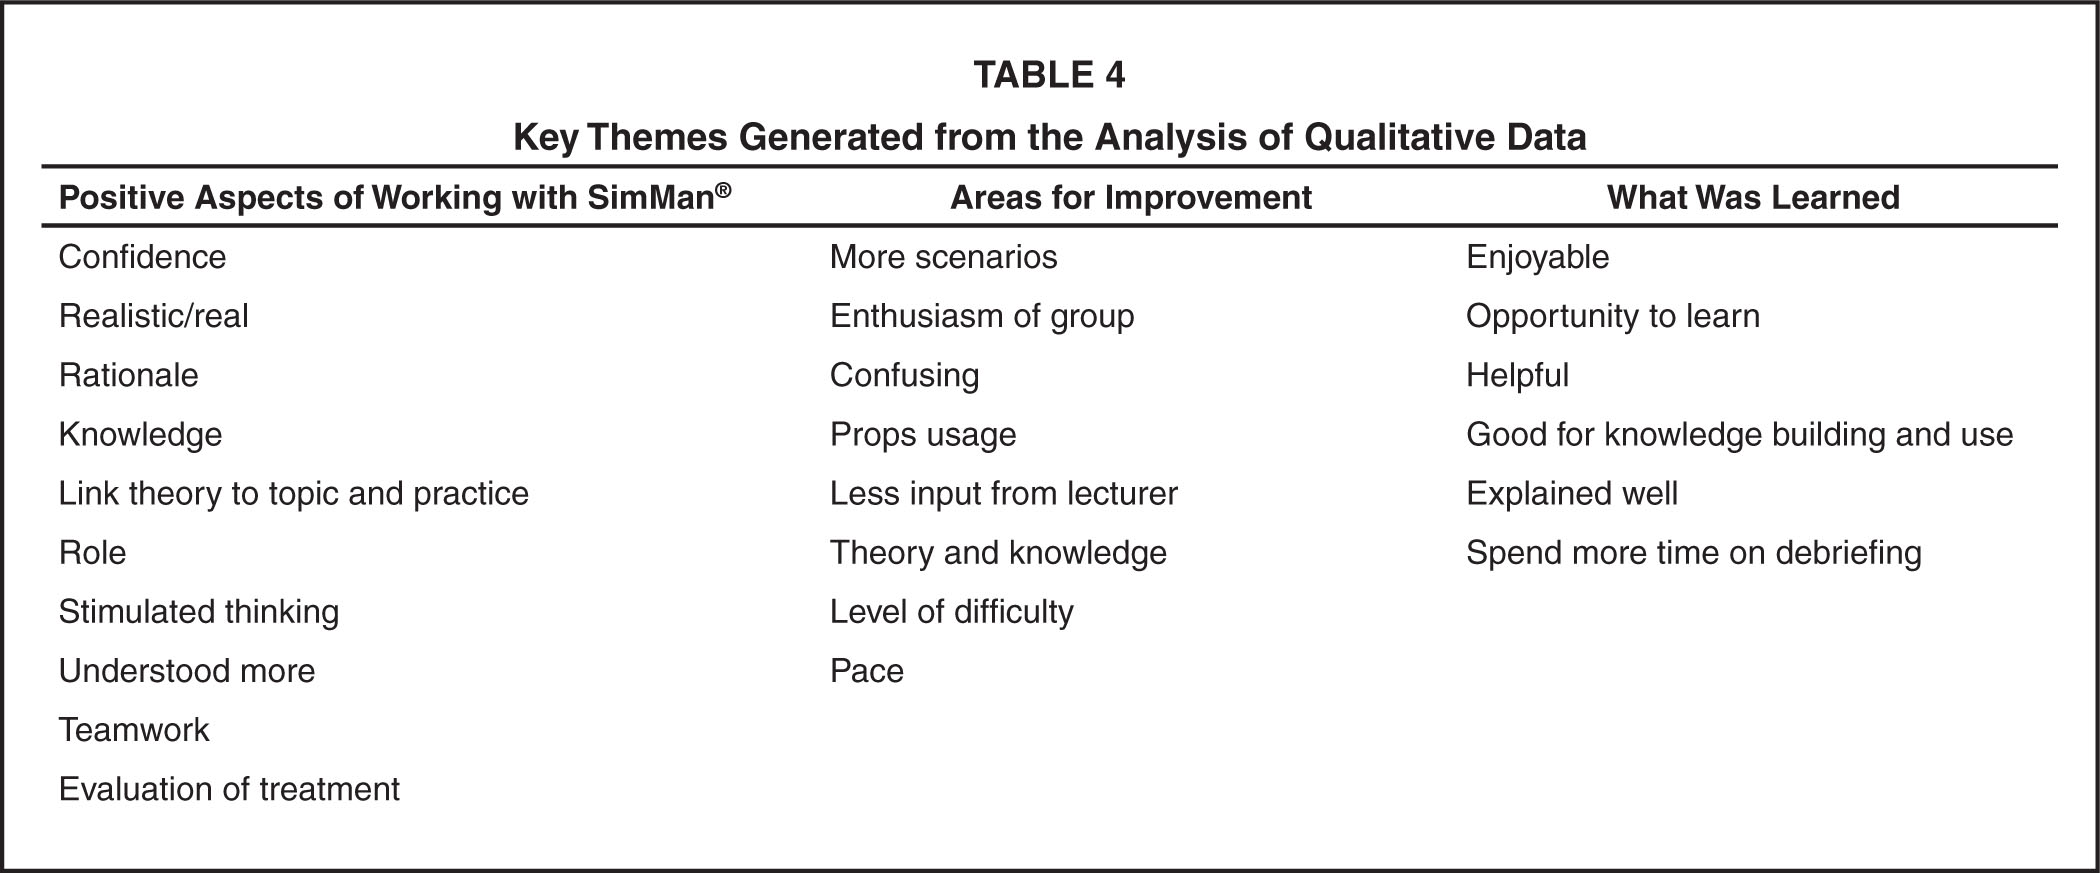 Key Themes Generated from the Analysis of Qualitative Data